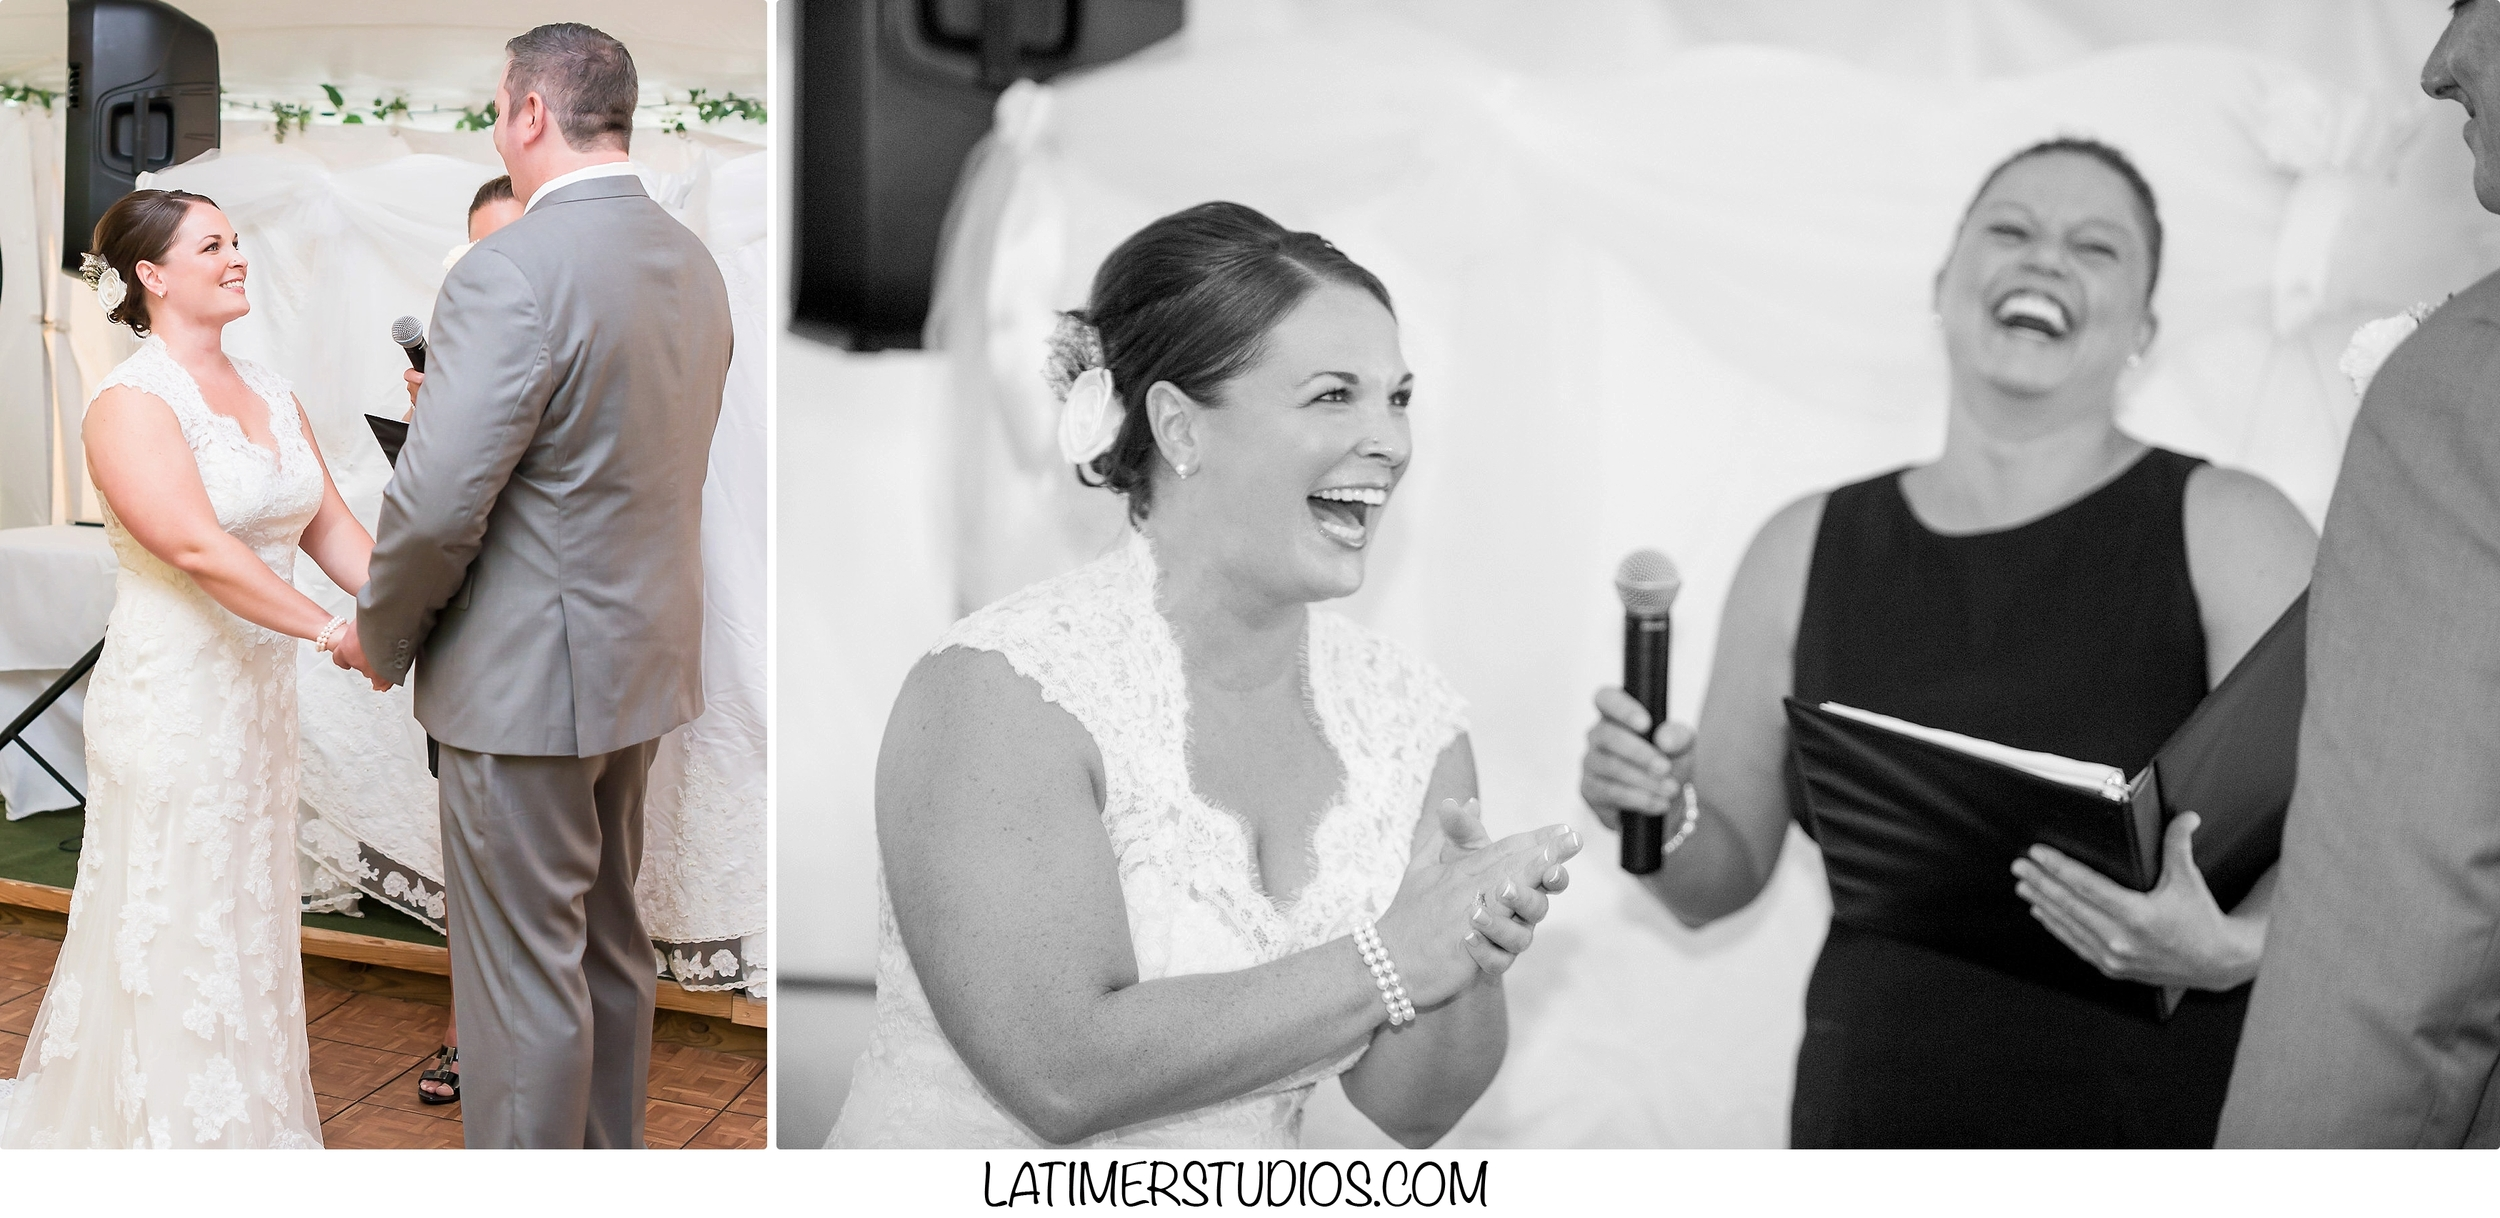 Latimer Studios Photography capturing a ceremony at a  wedding at Mile Away Restaurant in Milford NH